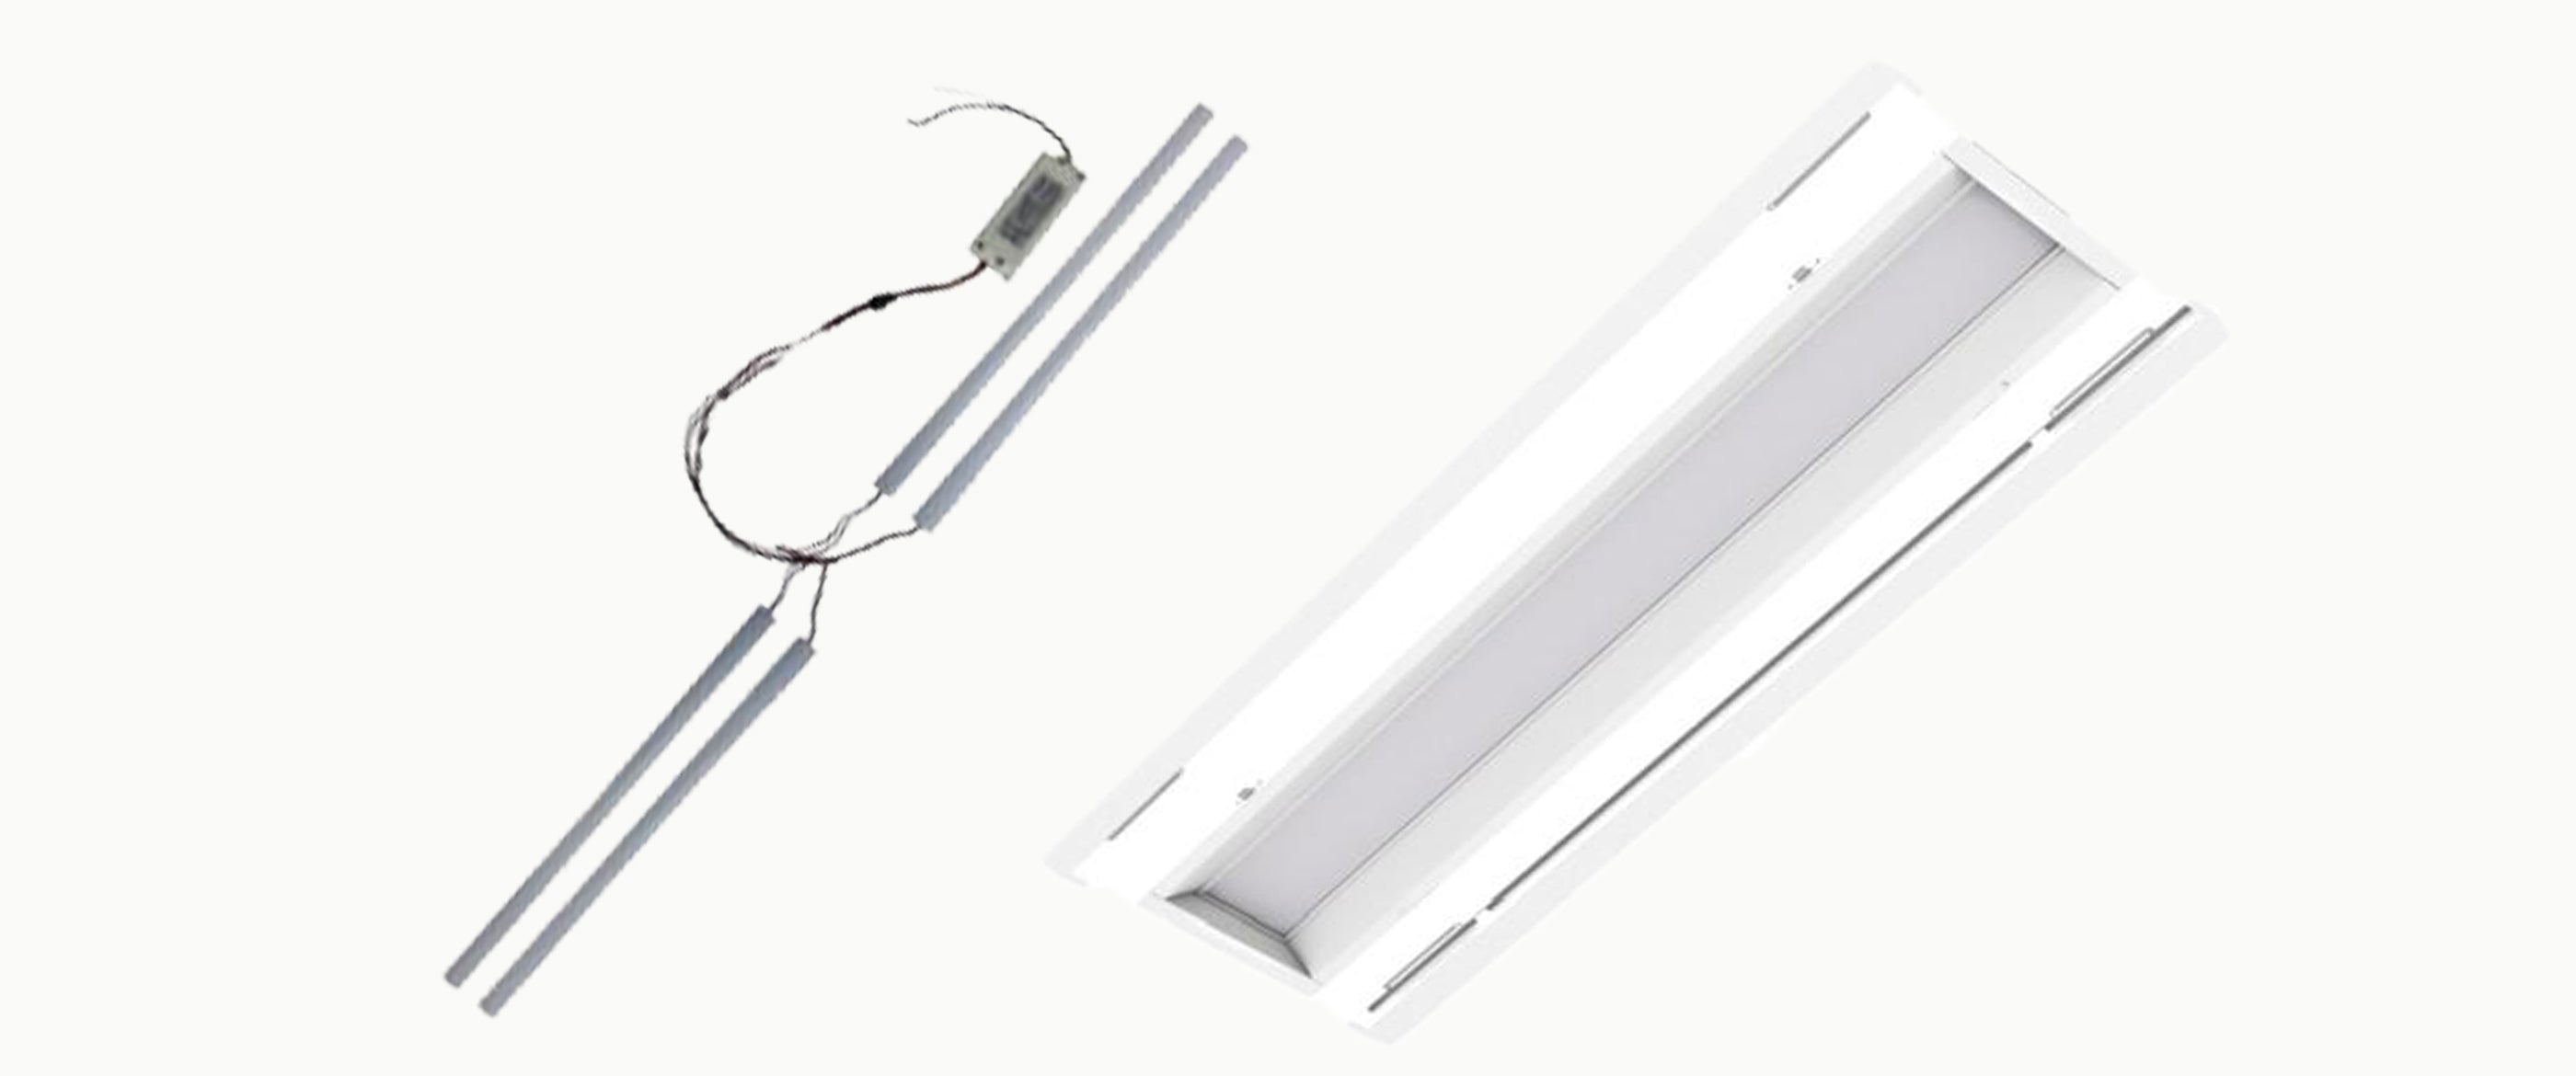 1 x 4 LED Troffer / Recessed Retrofit Lighting Kits